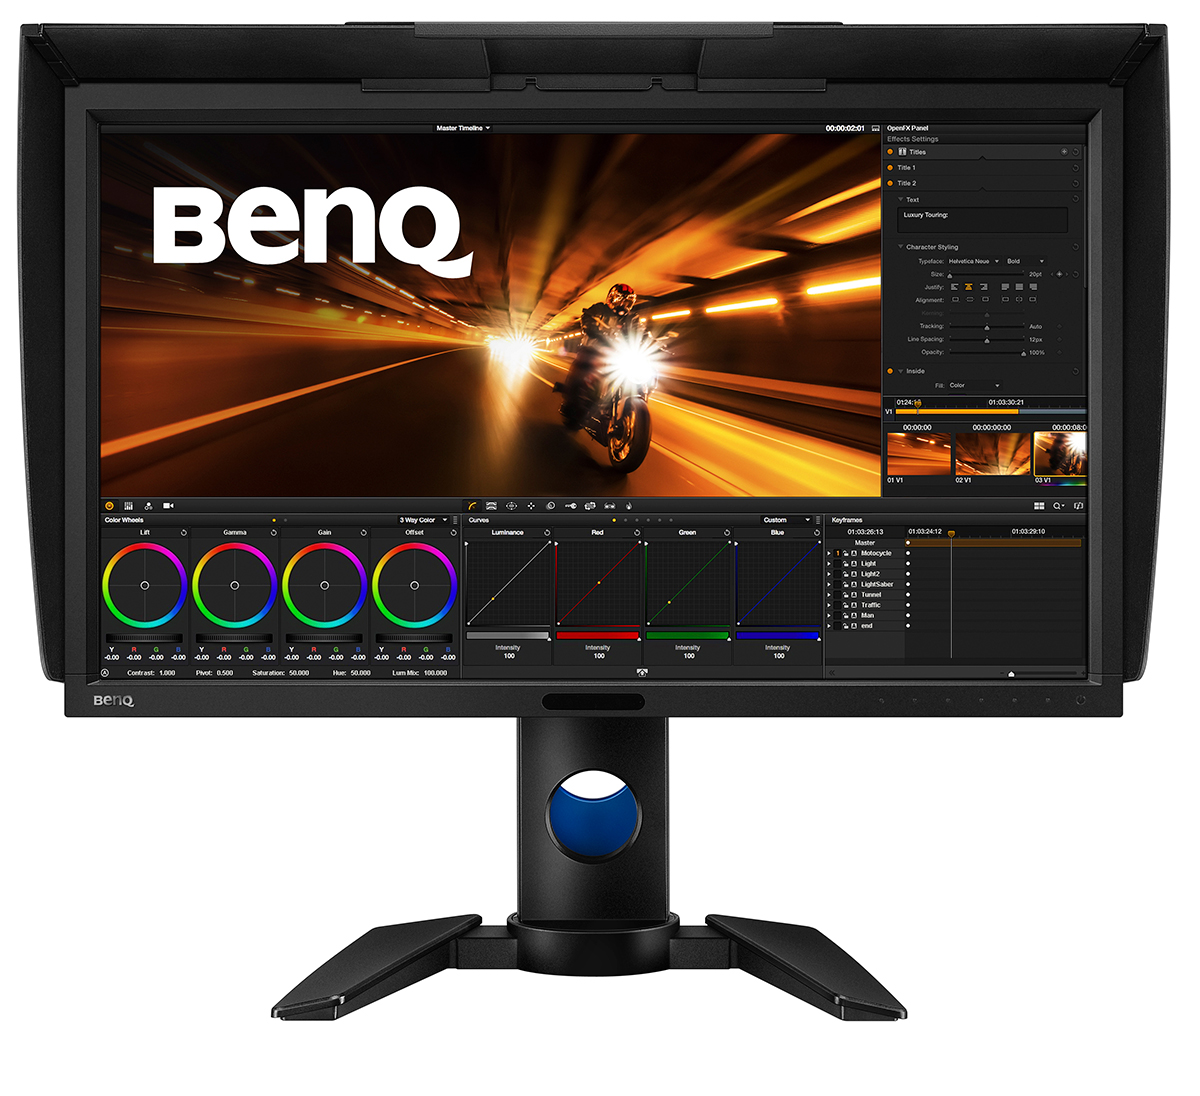 BenQ PV270 monitor review